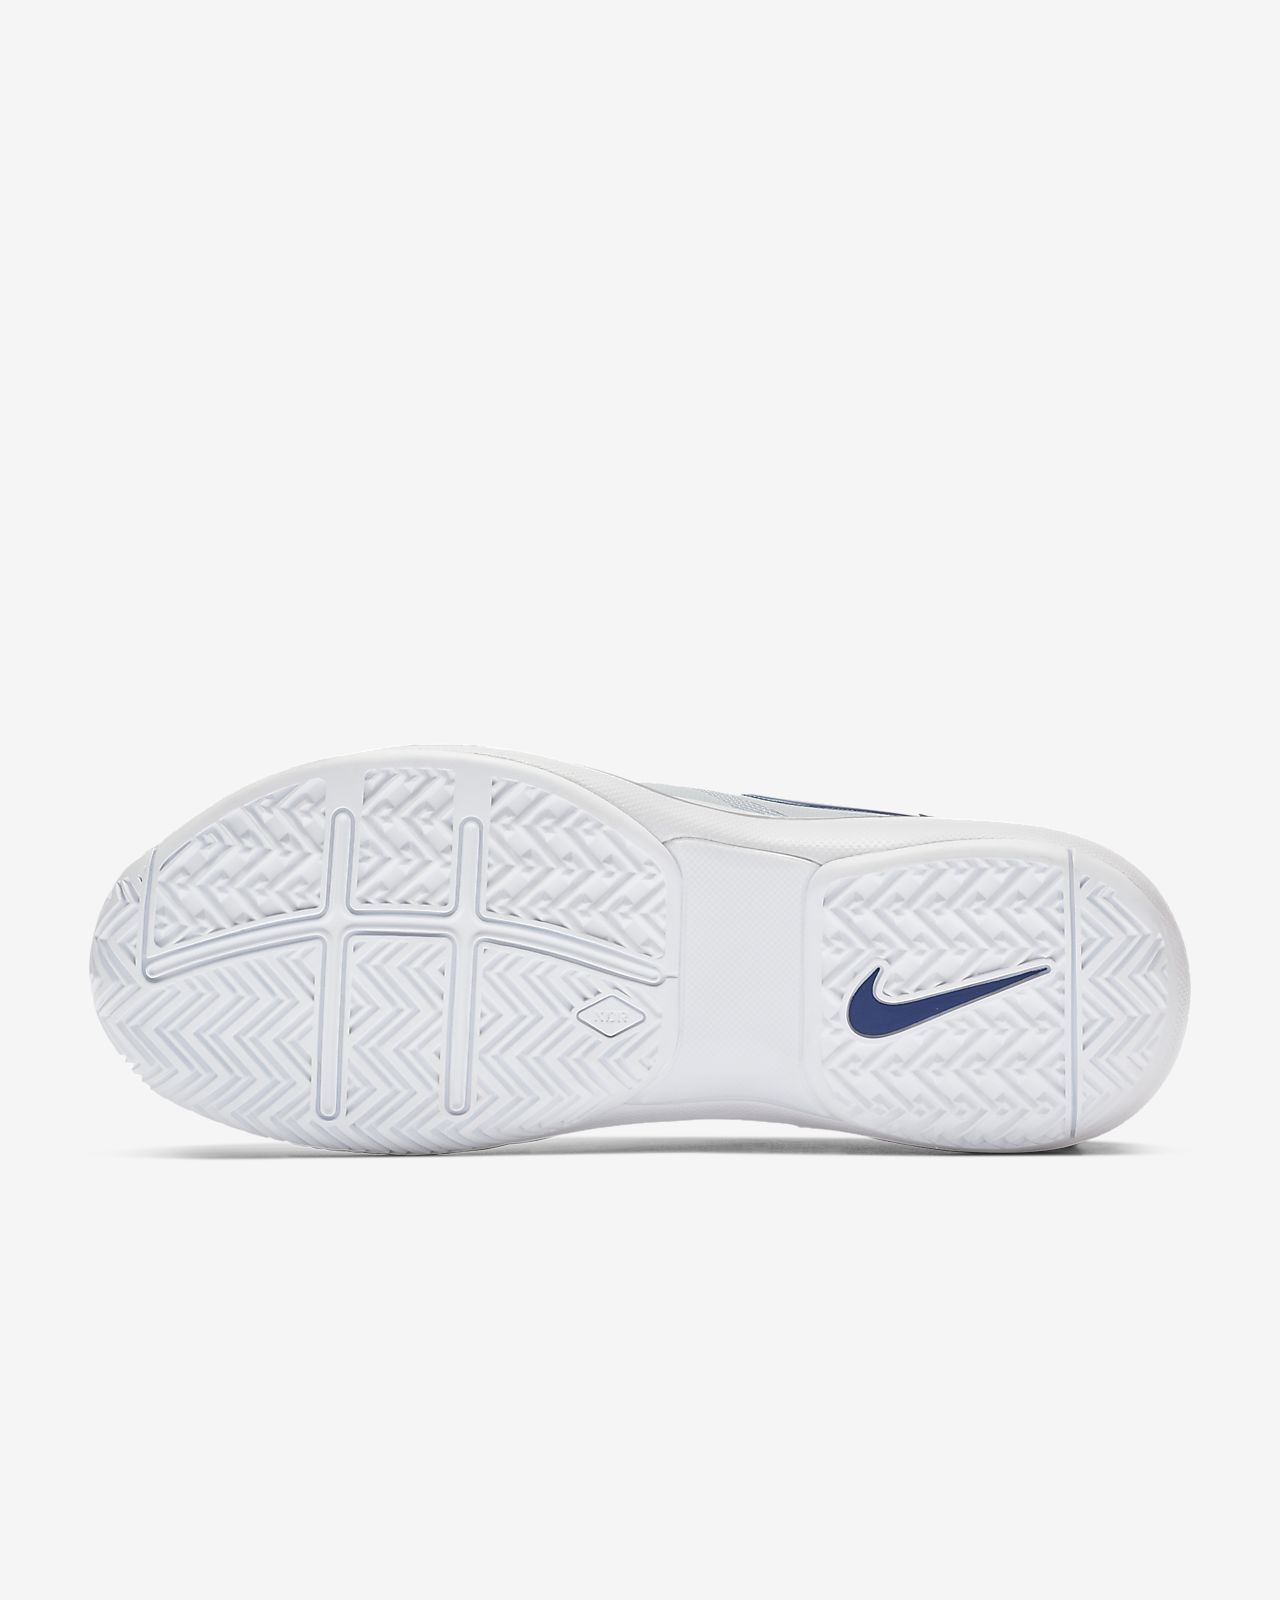 a6042bc338ae NikeCourt Air Zoom Prestige Women s Hard Court Tennis Shoe. Nike.com GB